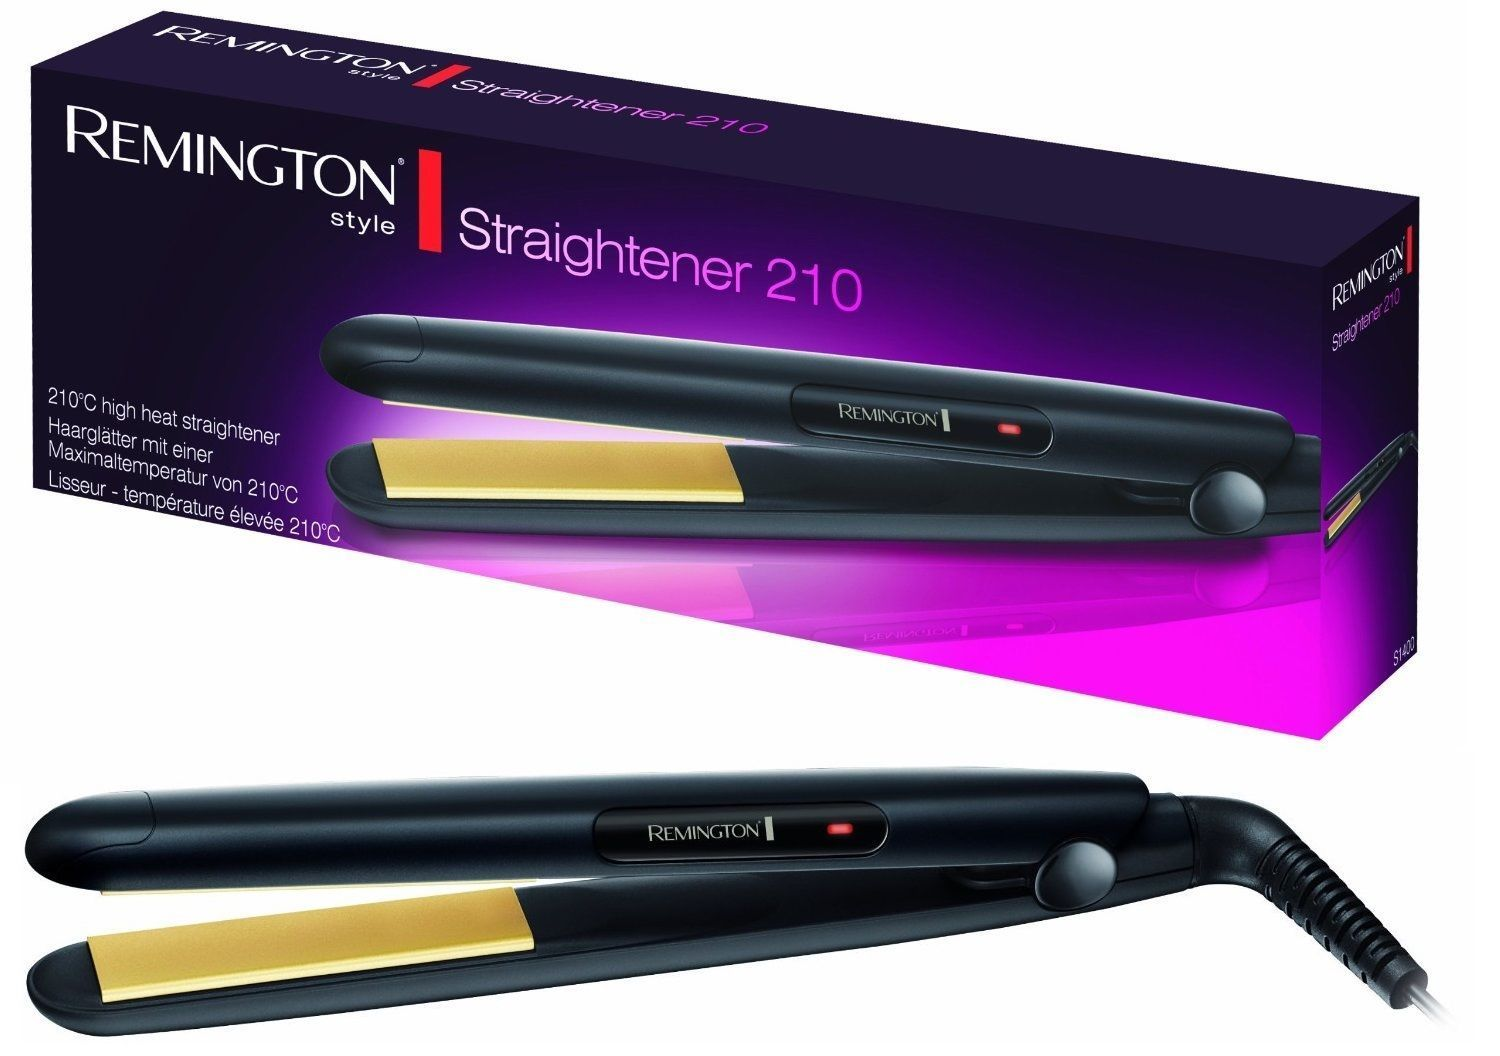 Remington Professional Ceramic Plates 210 Hair Straightener Worldwide Voltage